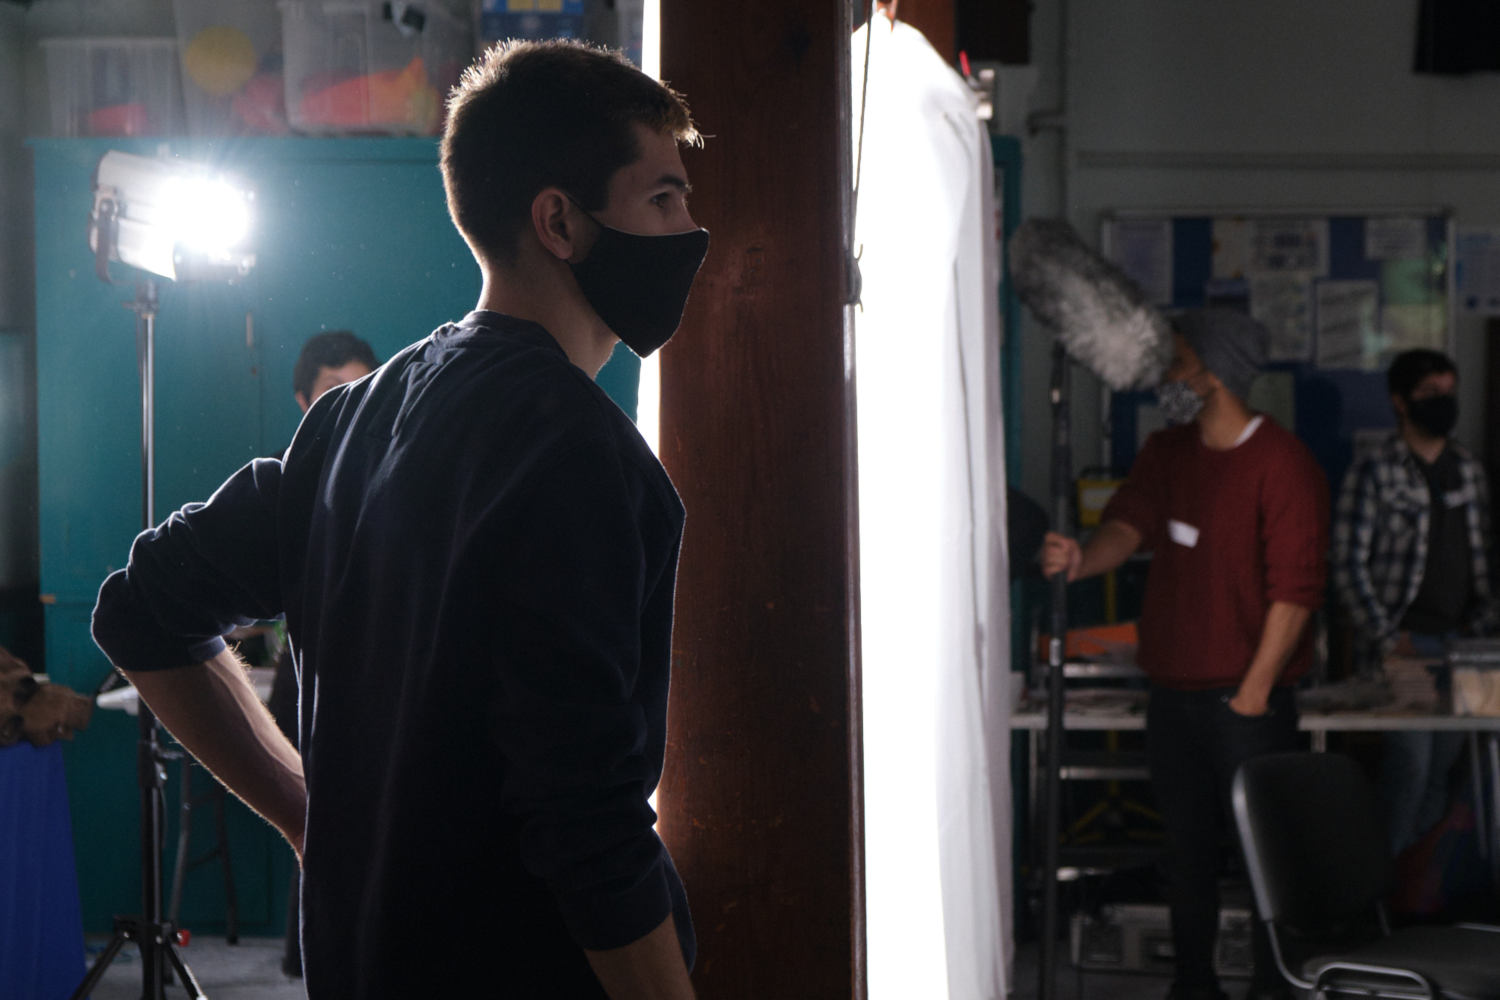 Behind the scenes image from Liam Calvert's Voyager short film of 1st AC Tom Filipe